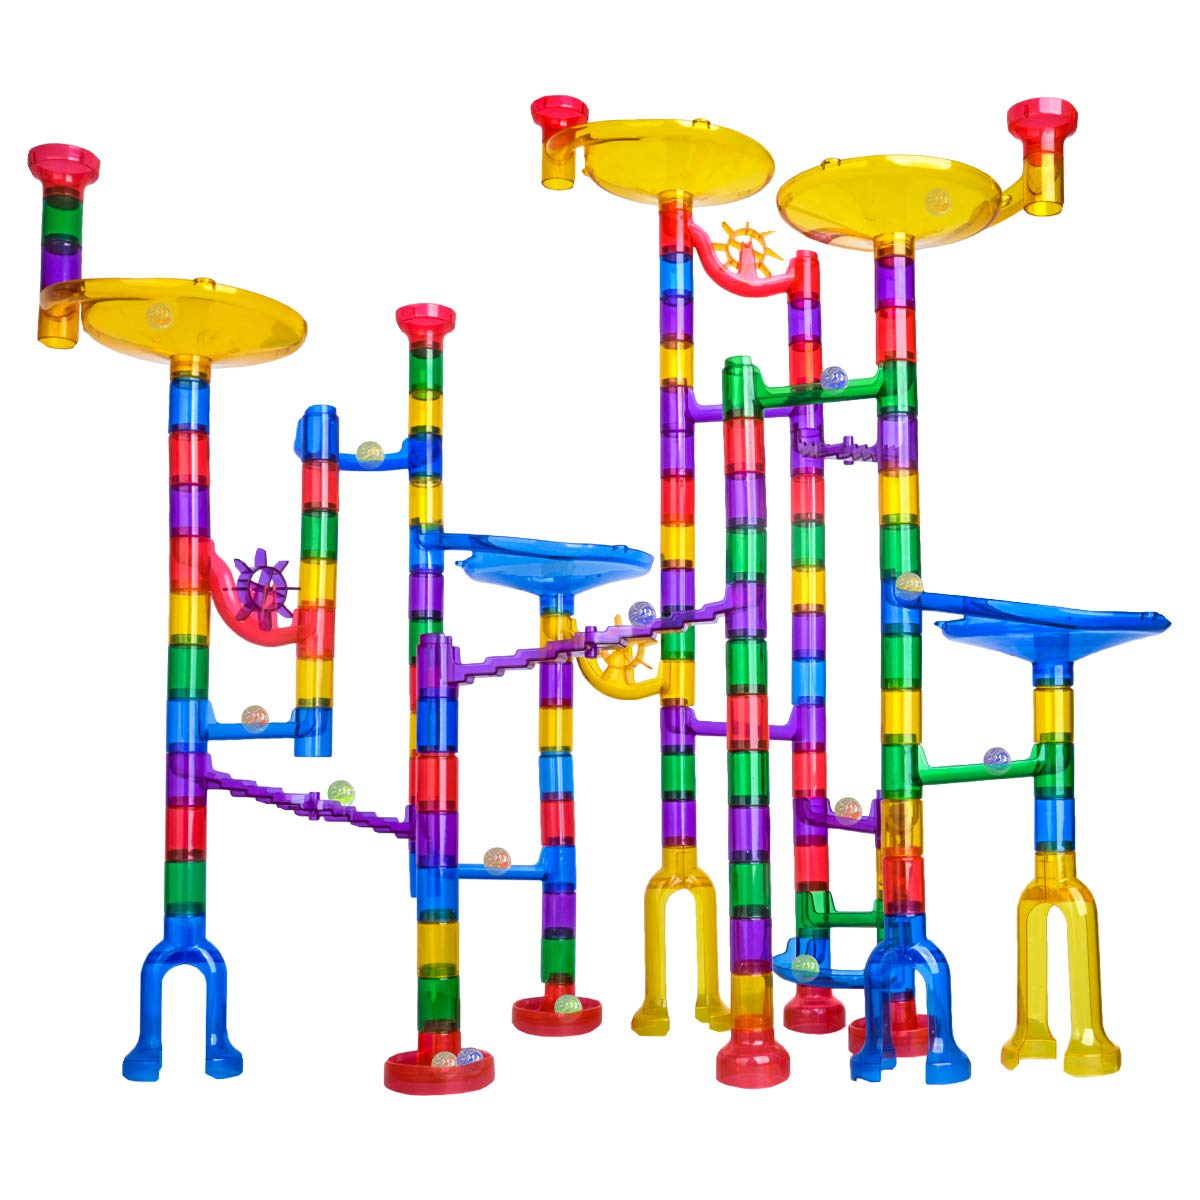 Colourful and tall marble run set up